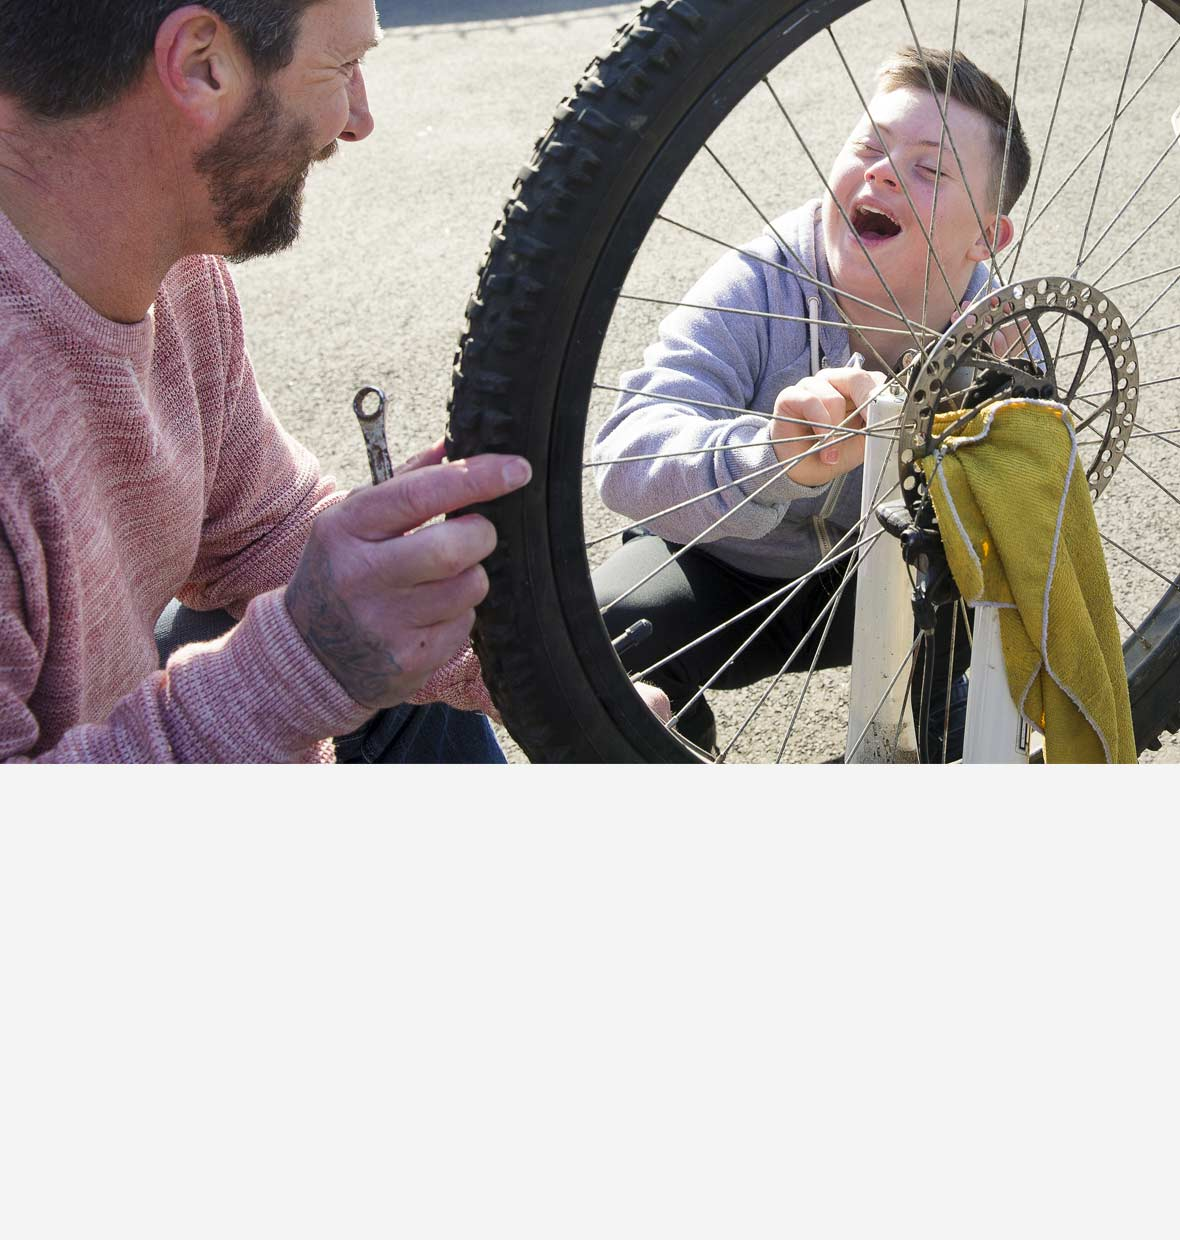 Dad and son fixing a bicycle